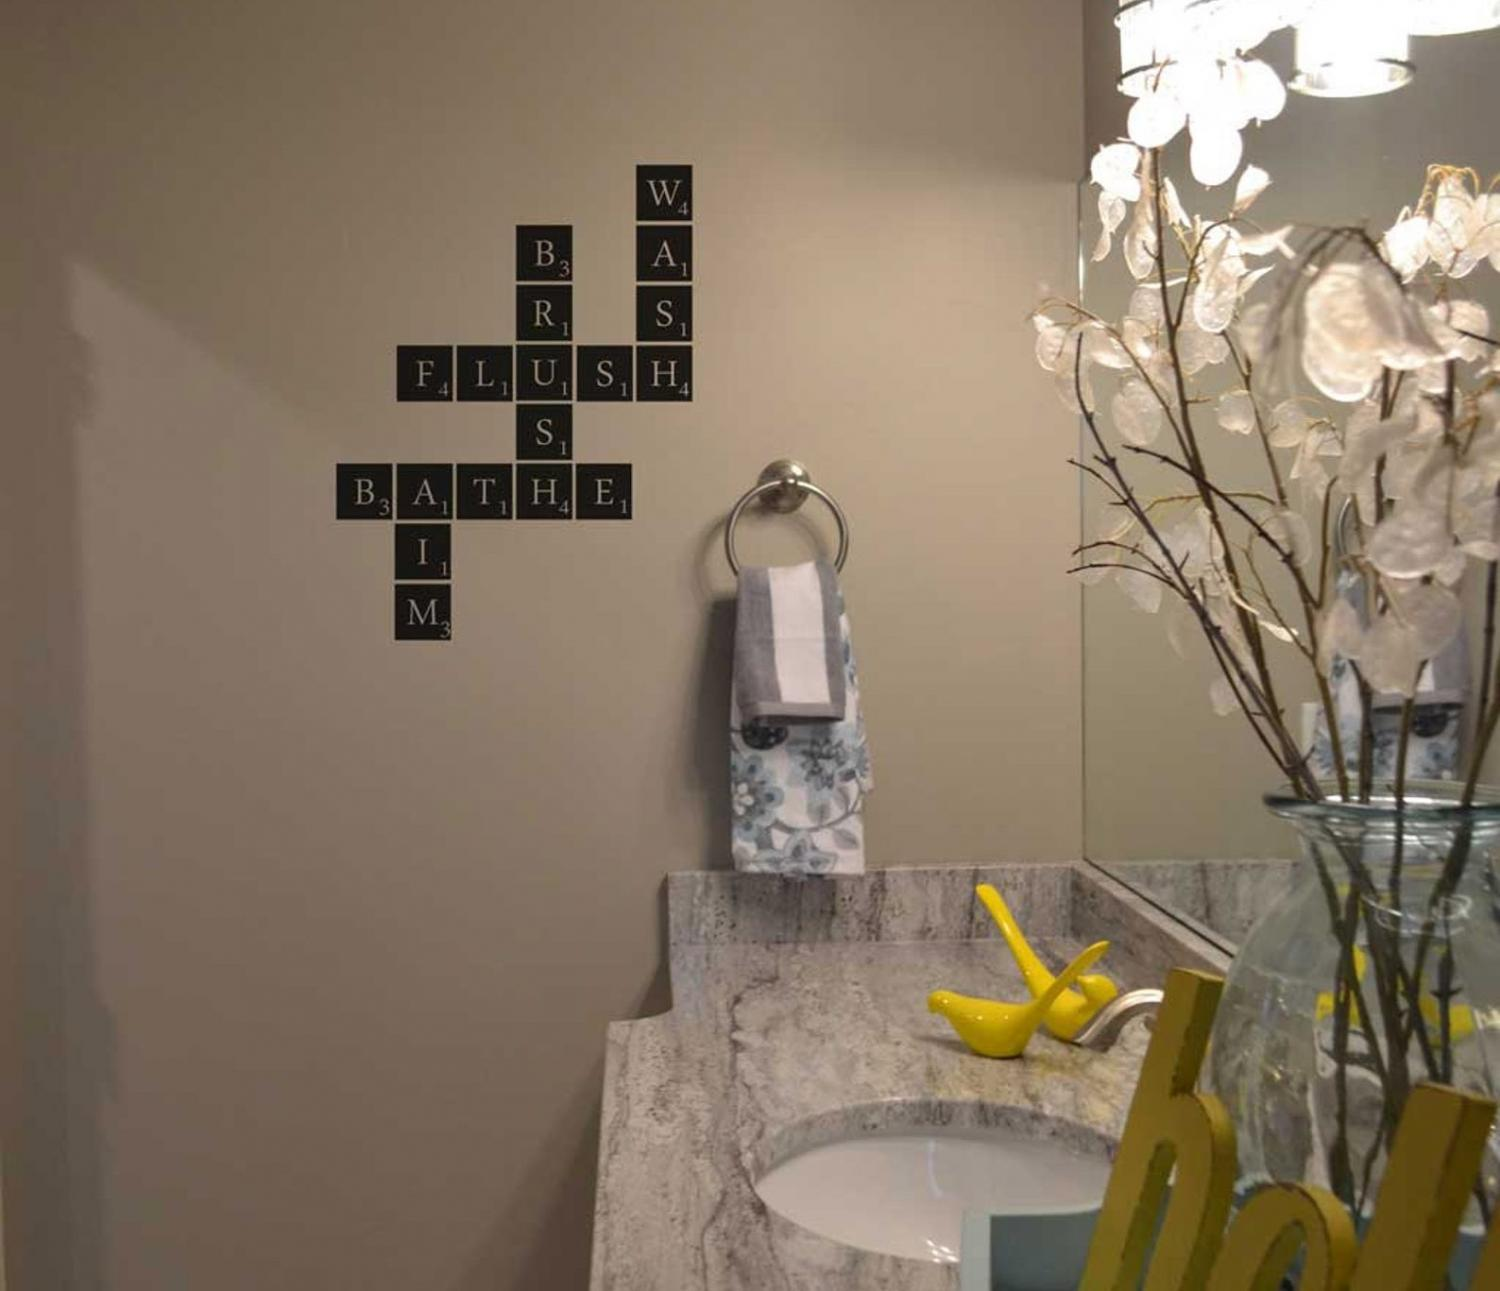 Wash Brush Flush Bathe Aim Scrabble Wall Bathroom Decal